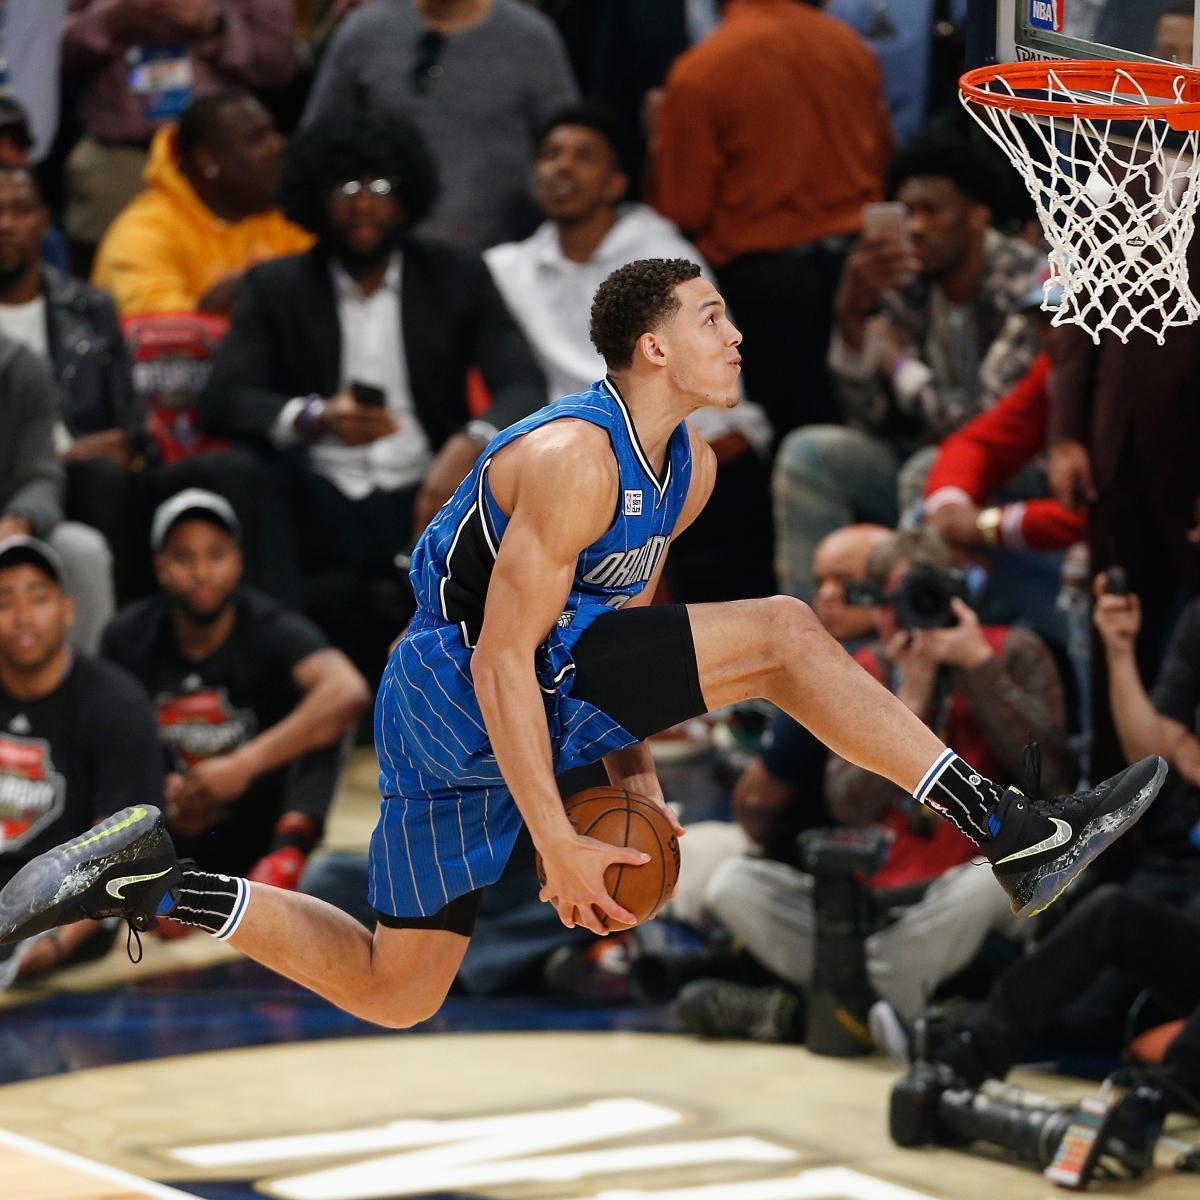 Ranking the Top NBA All-Star Slam Dunk Contests Since 2000